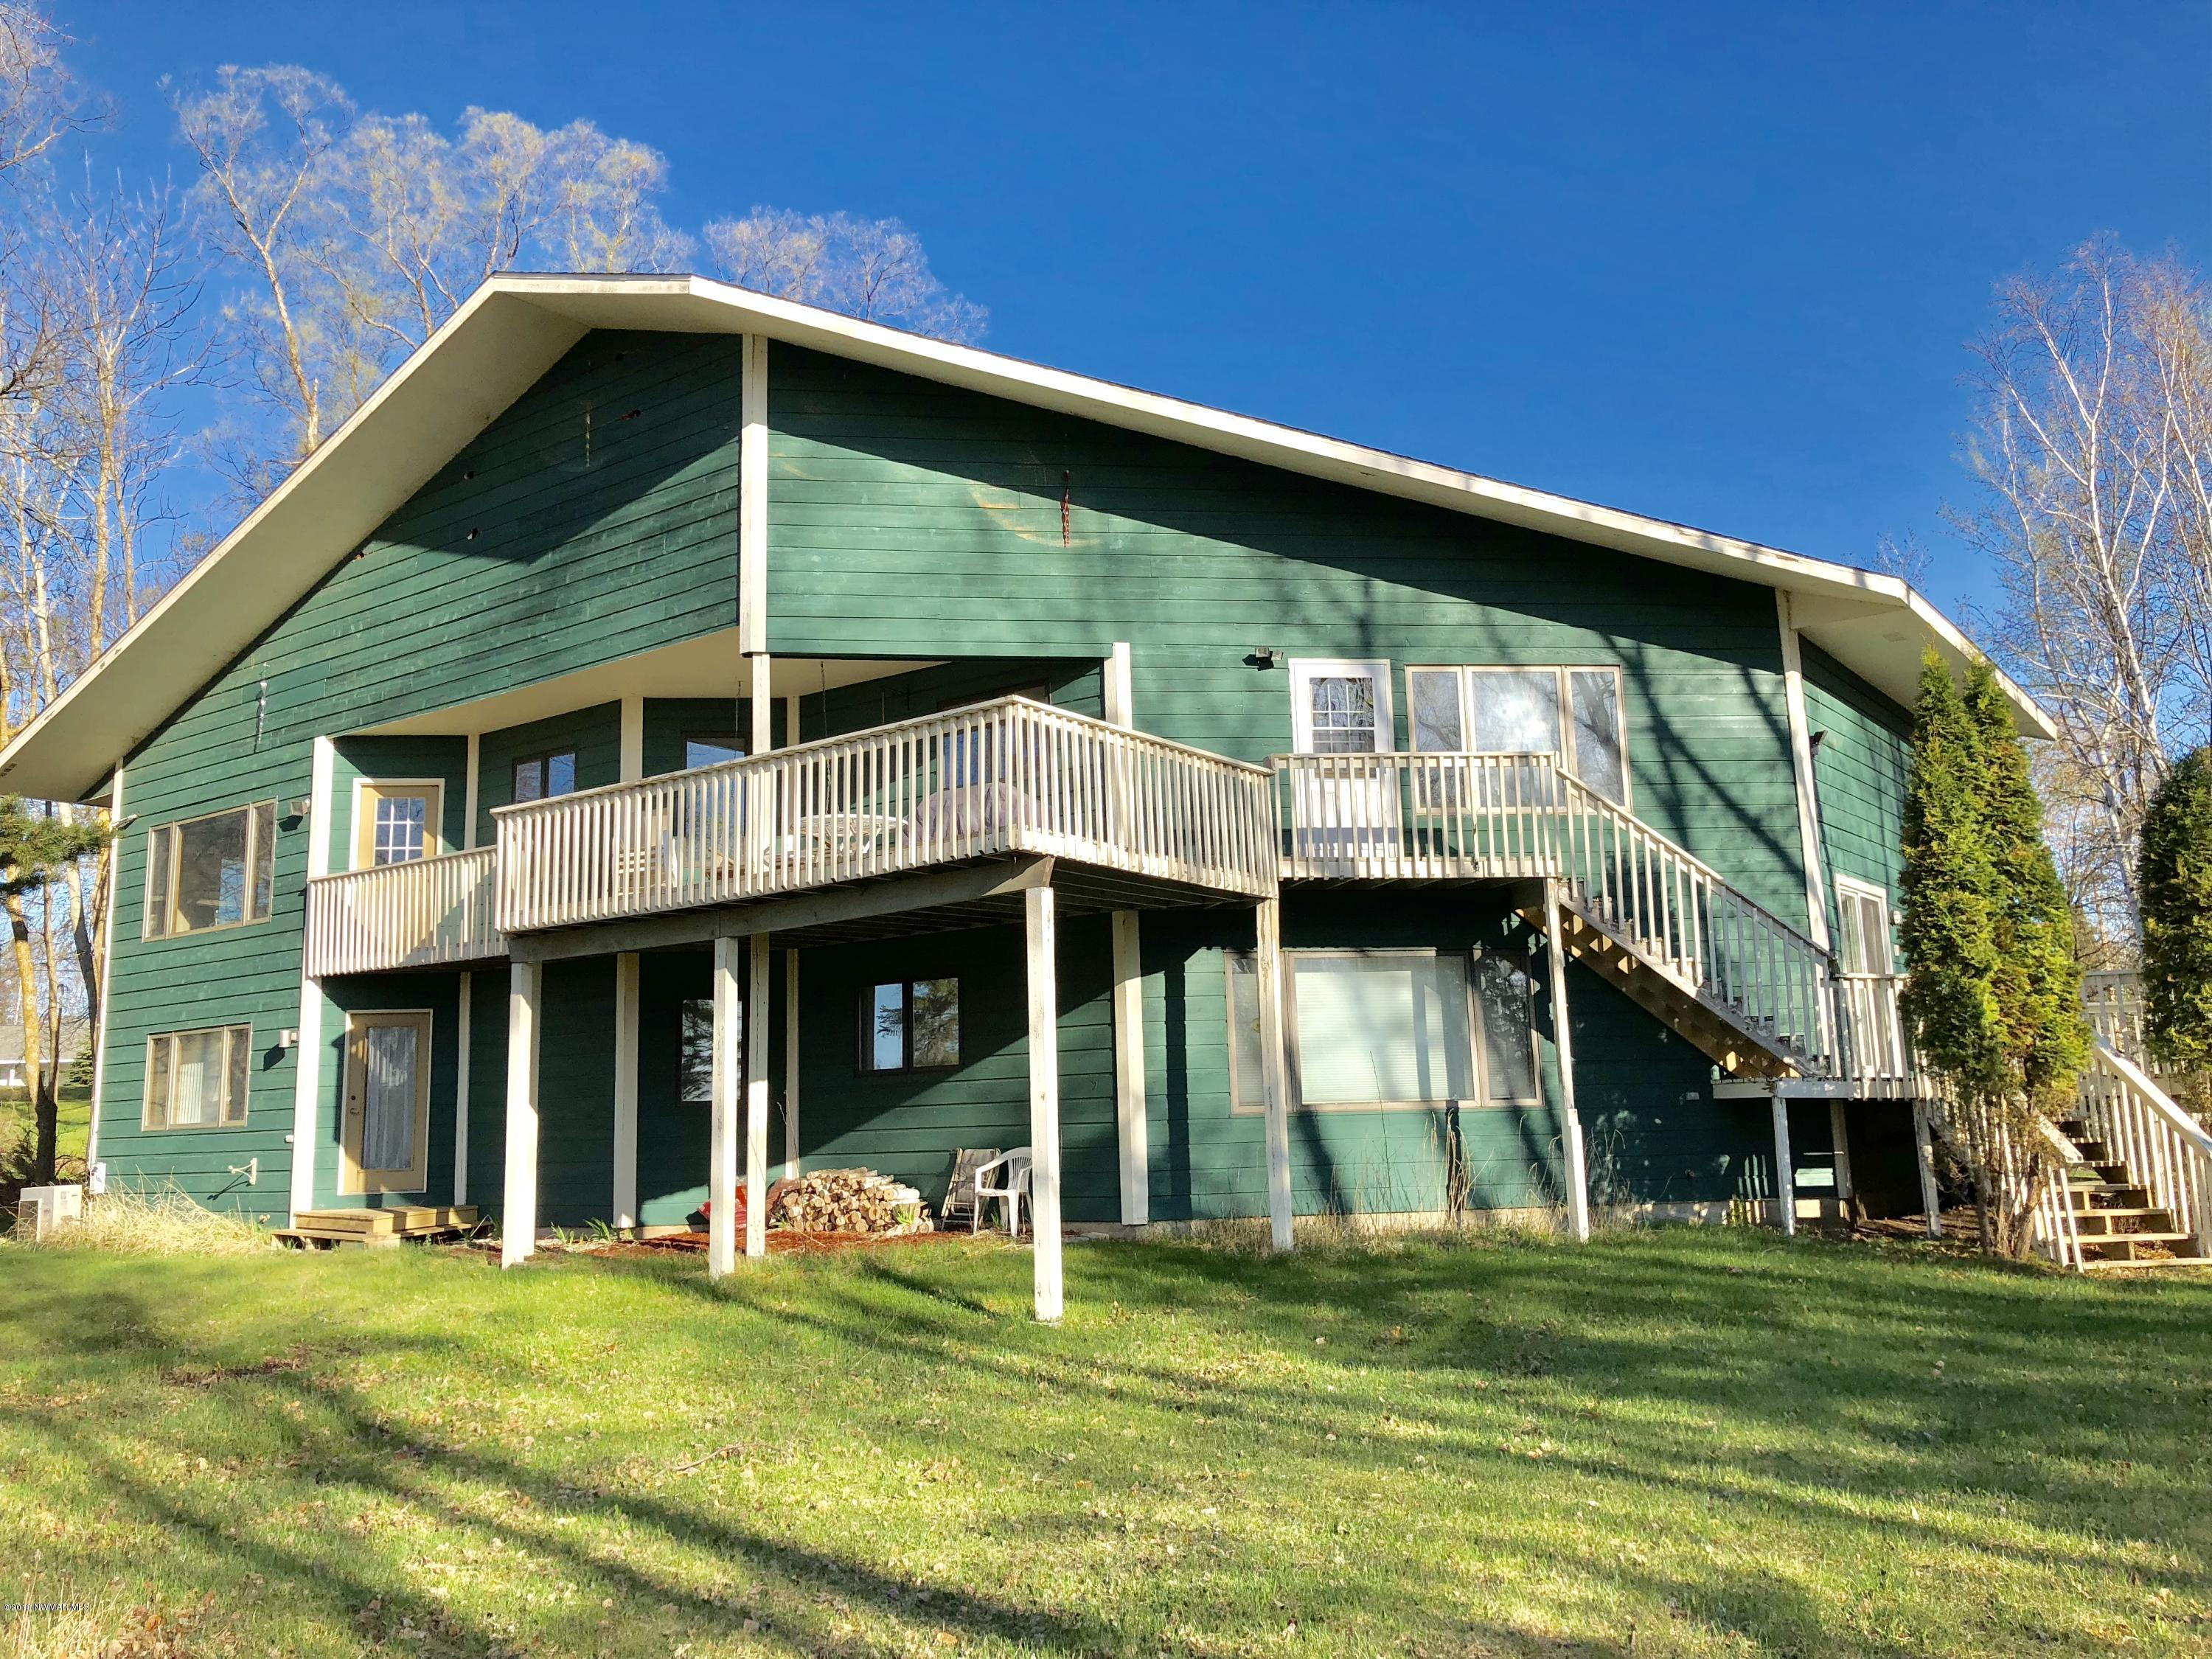 Make this stylish Lake Bemidji home yours today. Call for a private tour!